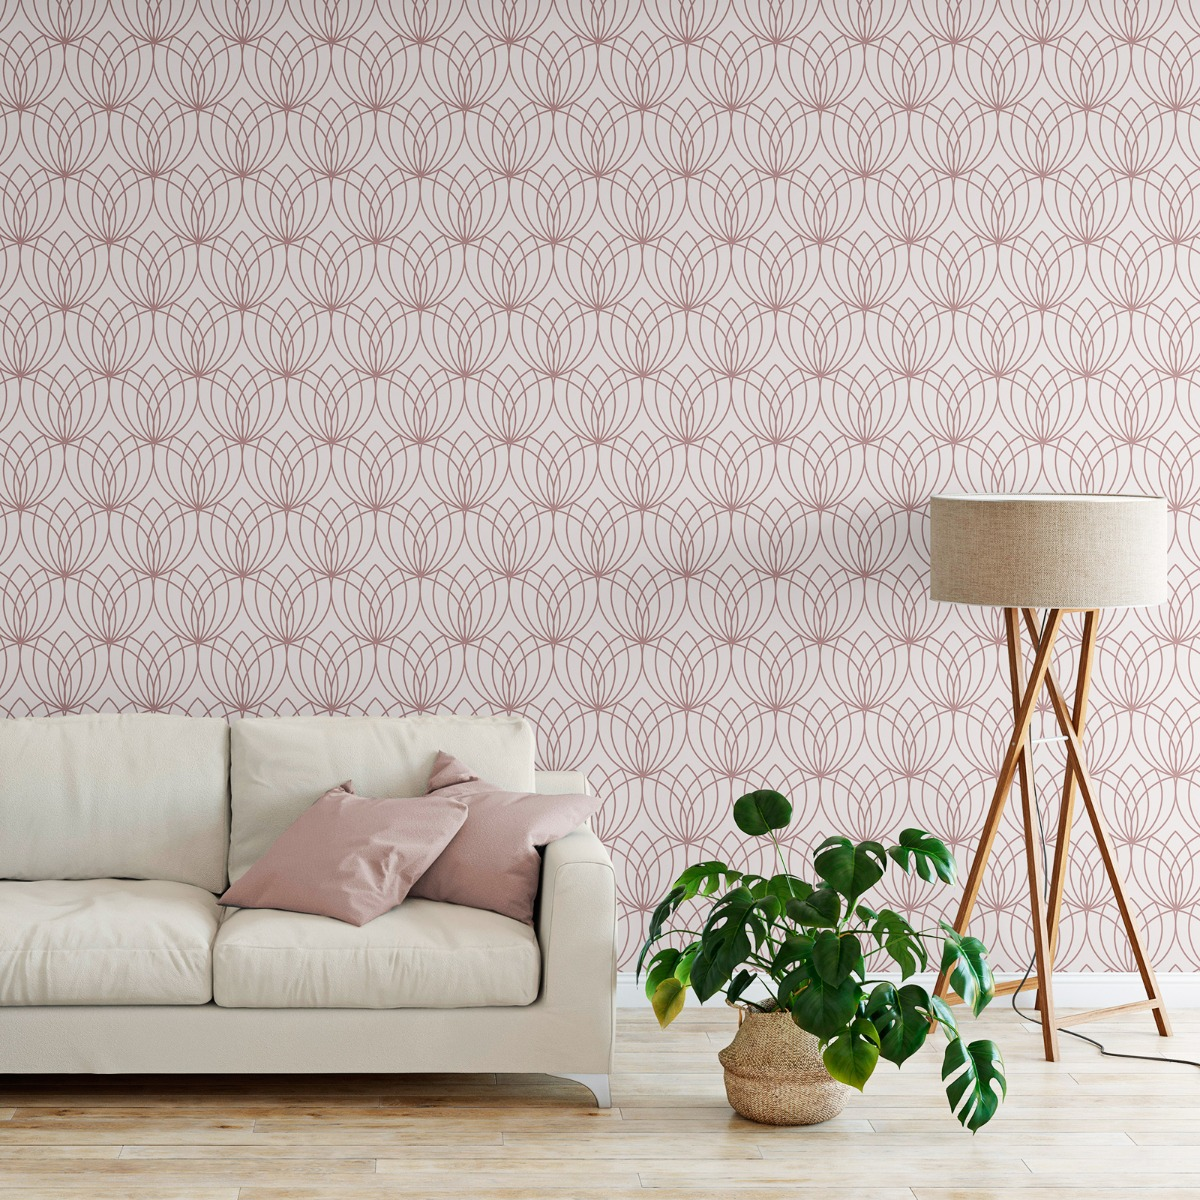 New Stylish Trend Wallpaper For Bedroom Lounge Stairway And More